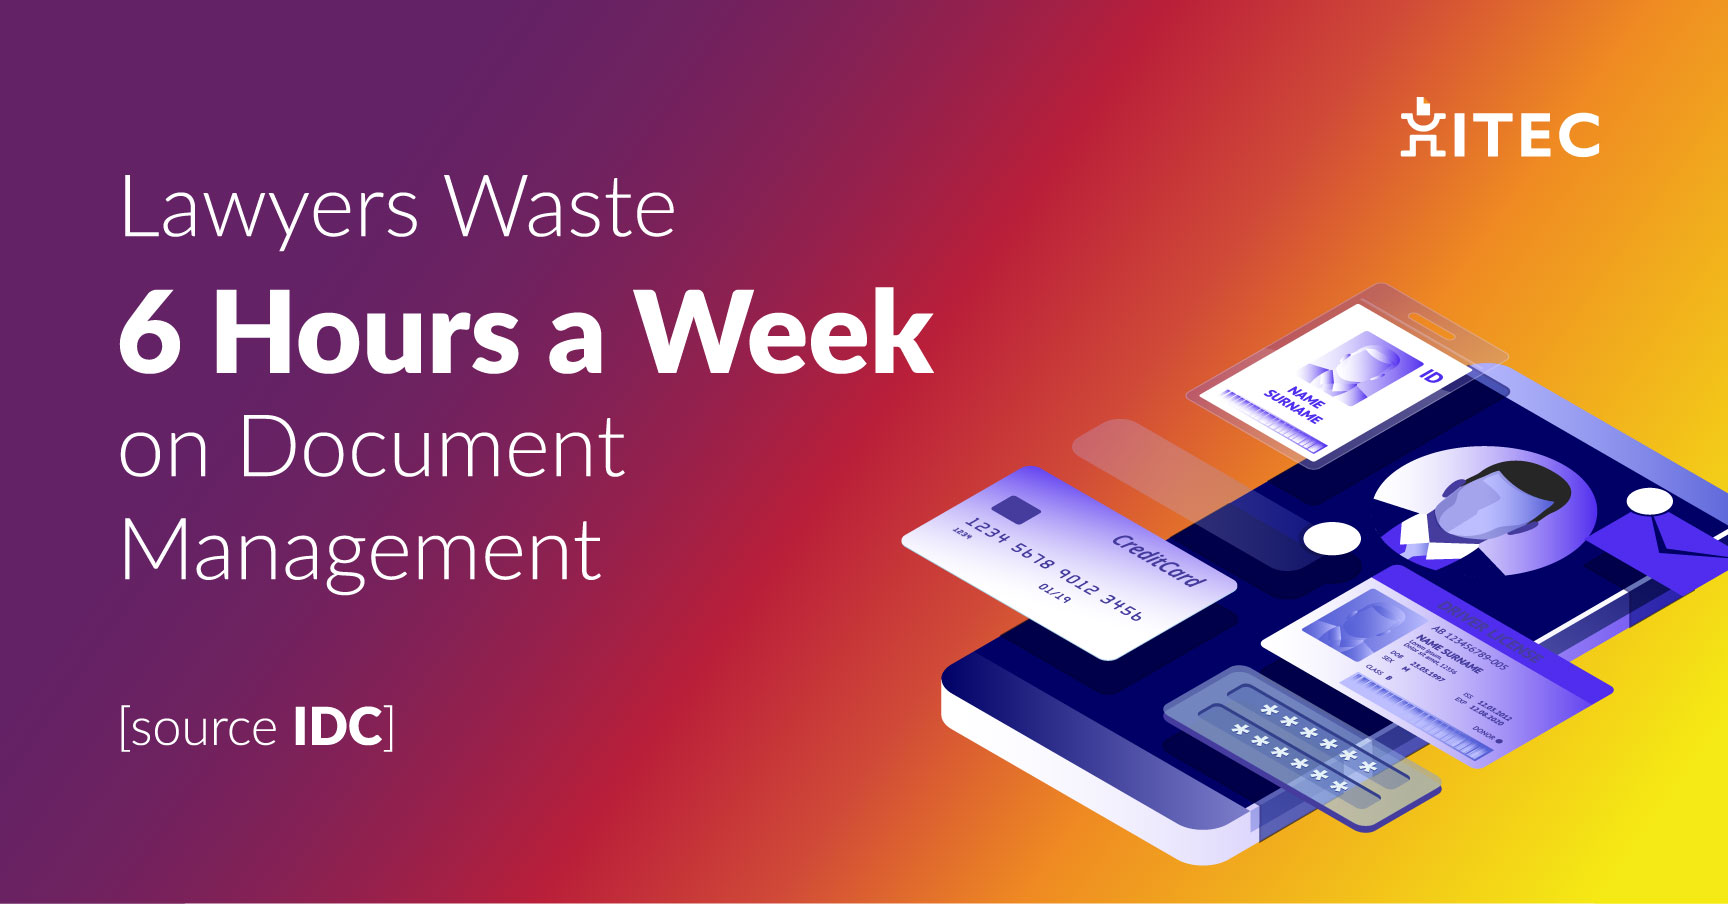 SocialLawyers-Waste-6-Hours-a-Week-on-Document-Management-[source-IDC]